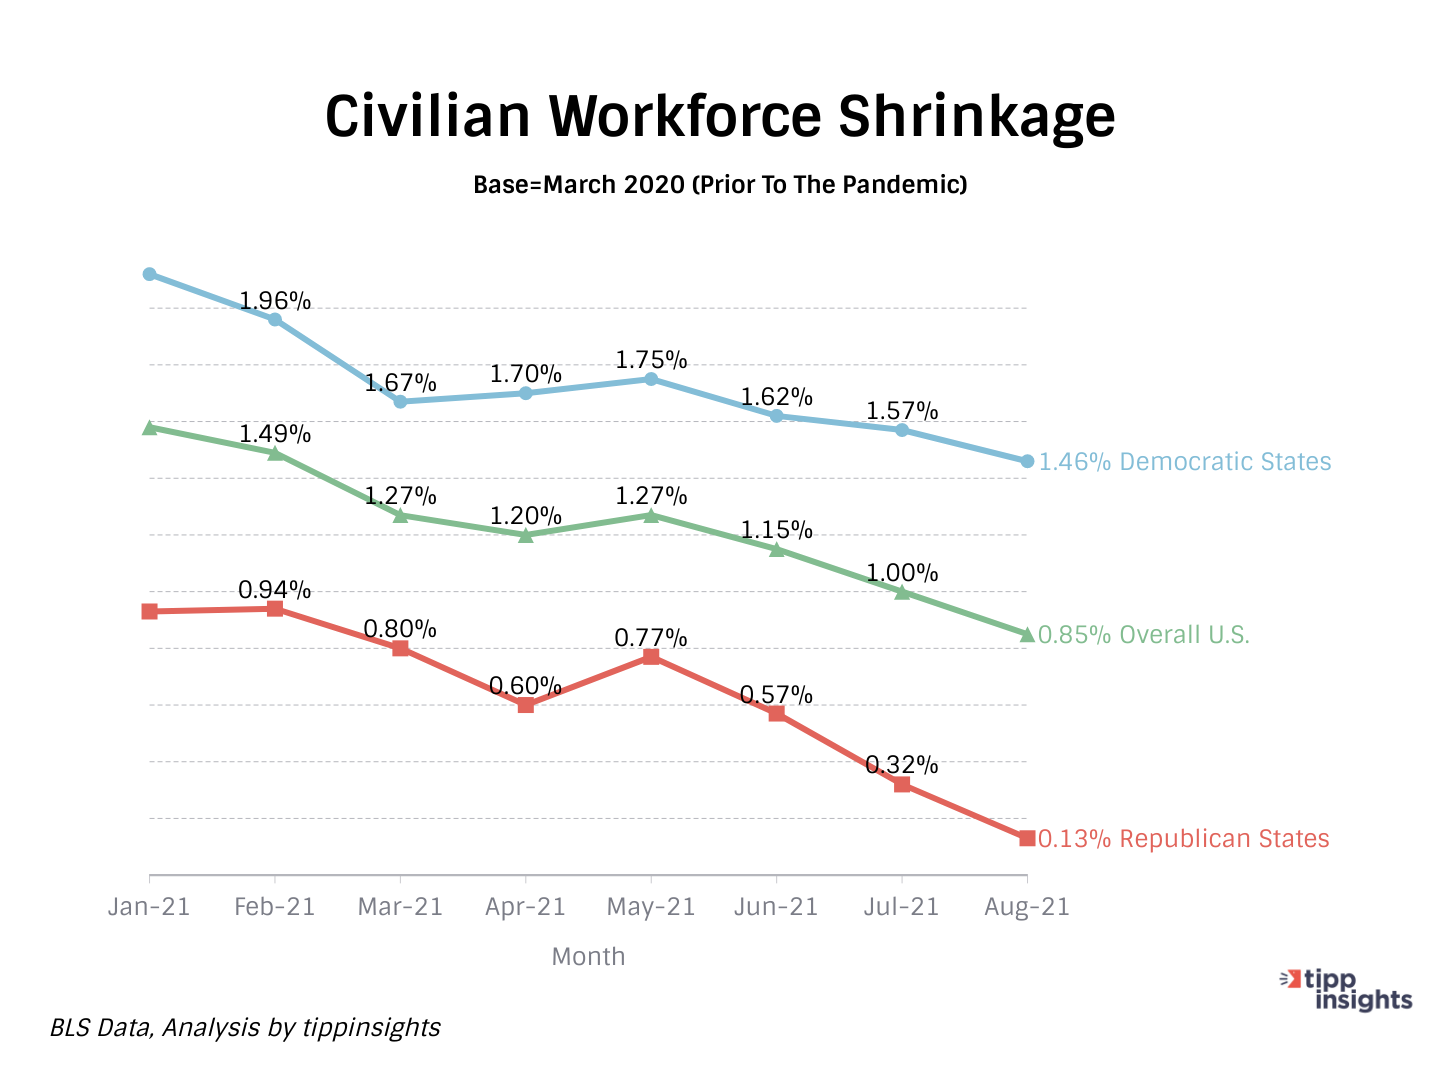 Shrinkage of Civilian Workforce pre-pandemic to current